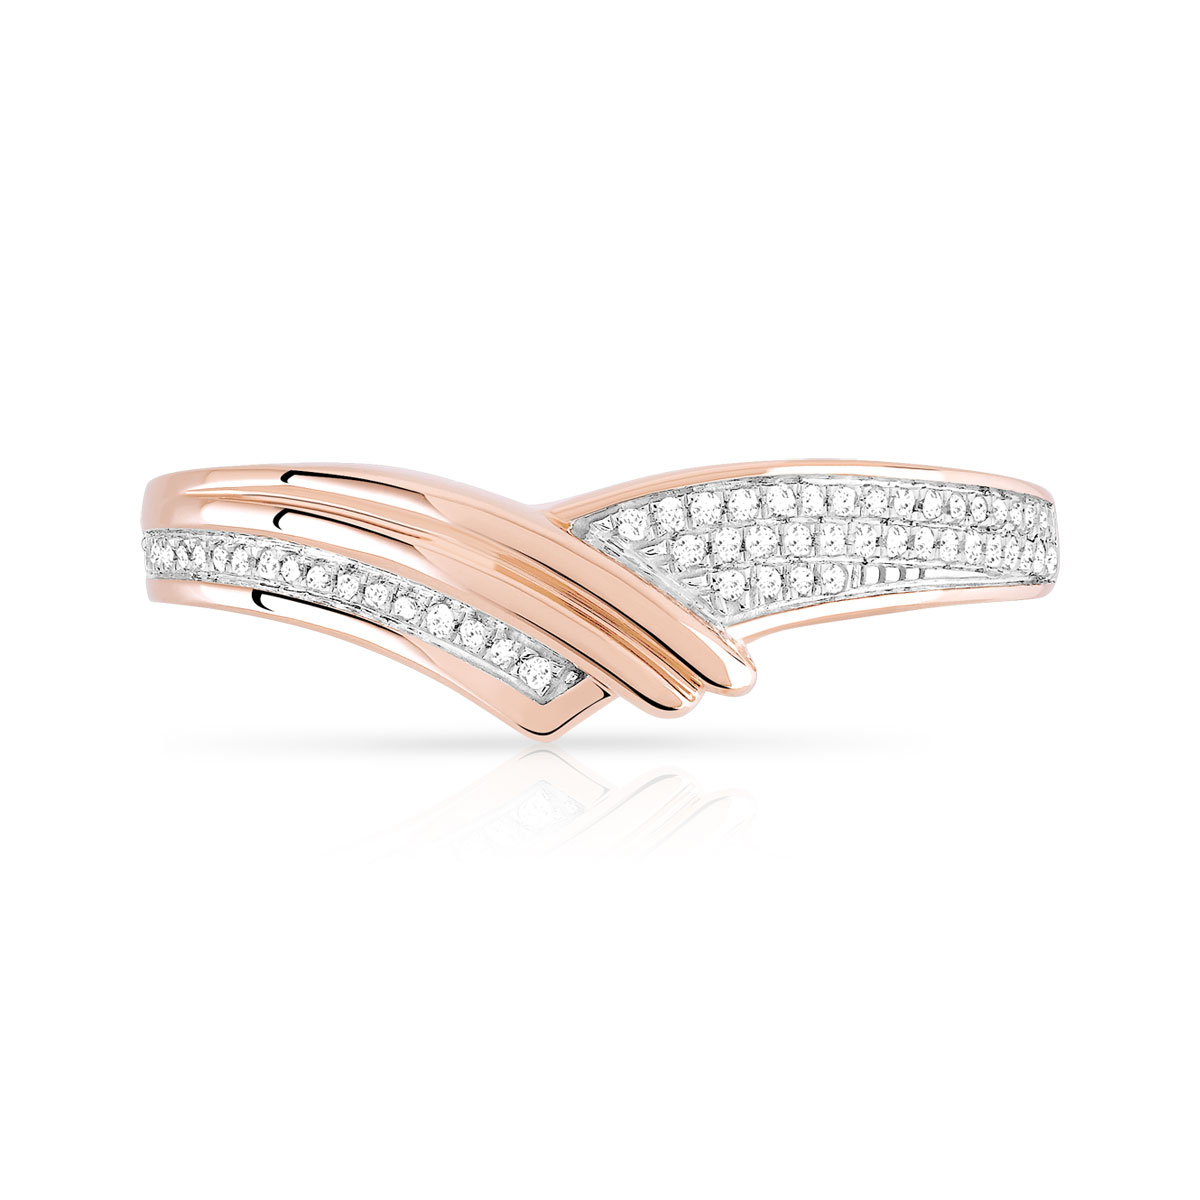 Bague or 375 rose diamant - vue 3